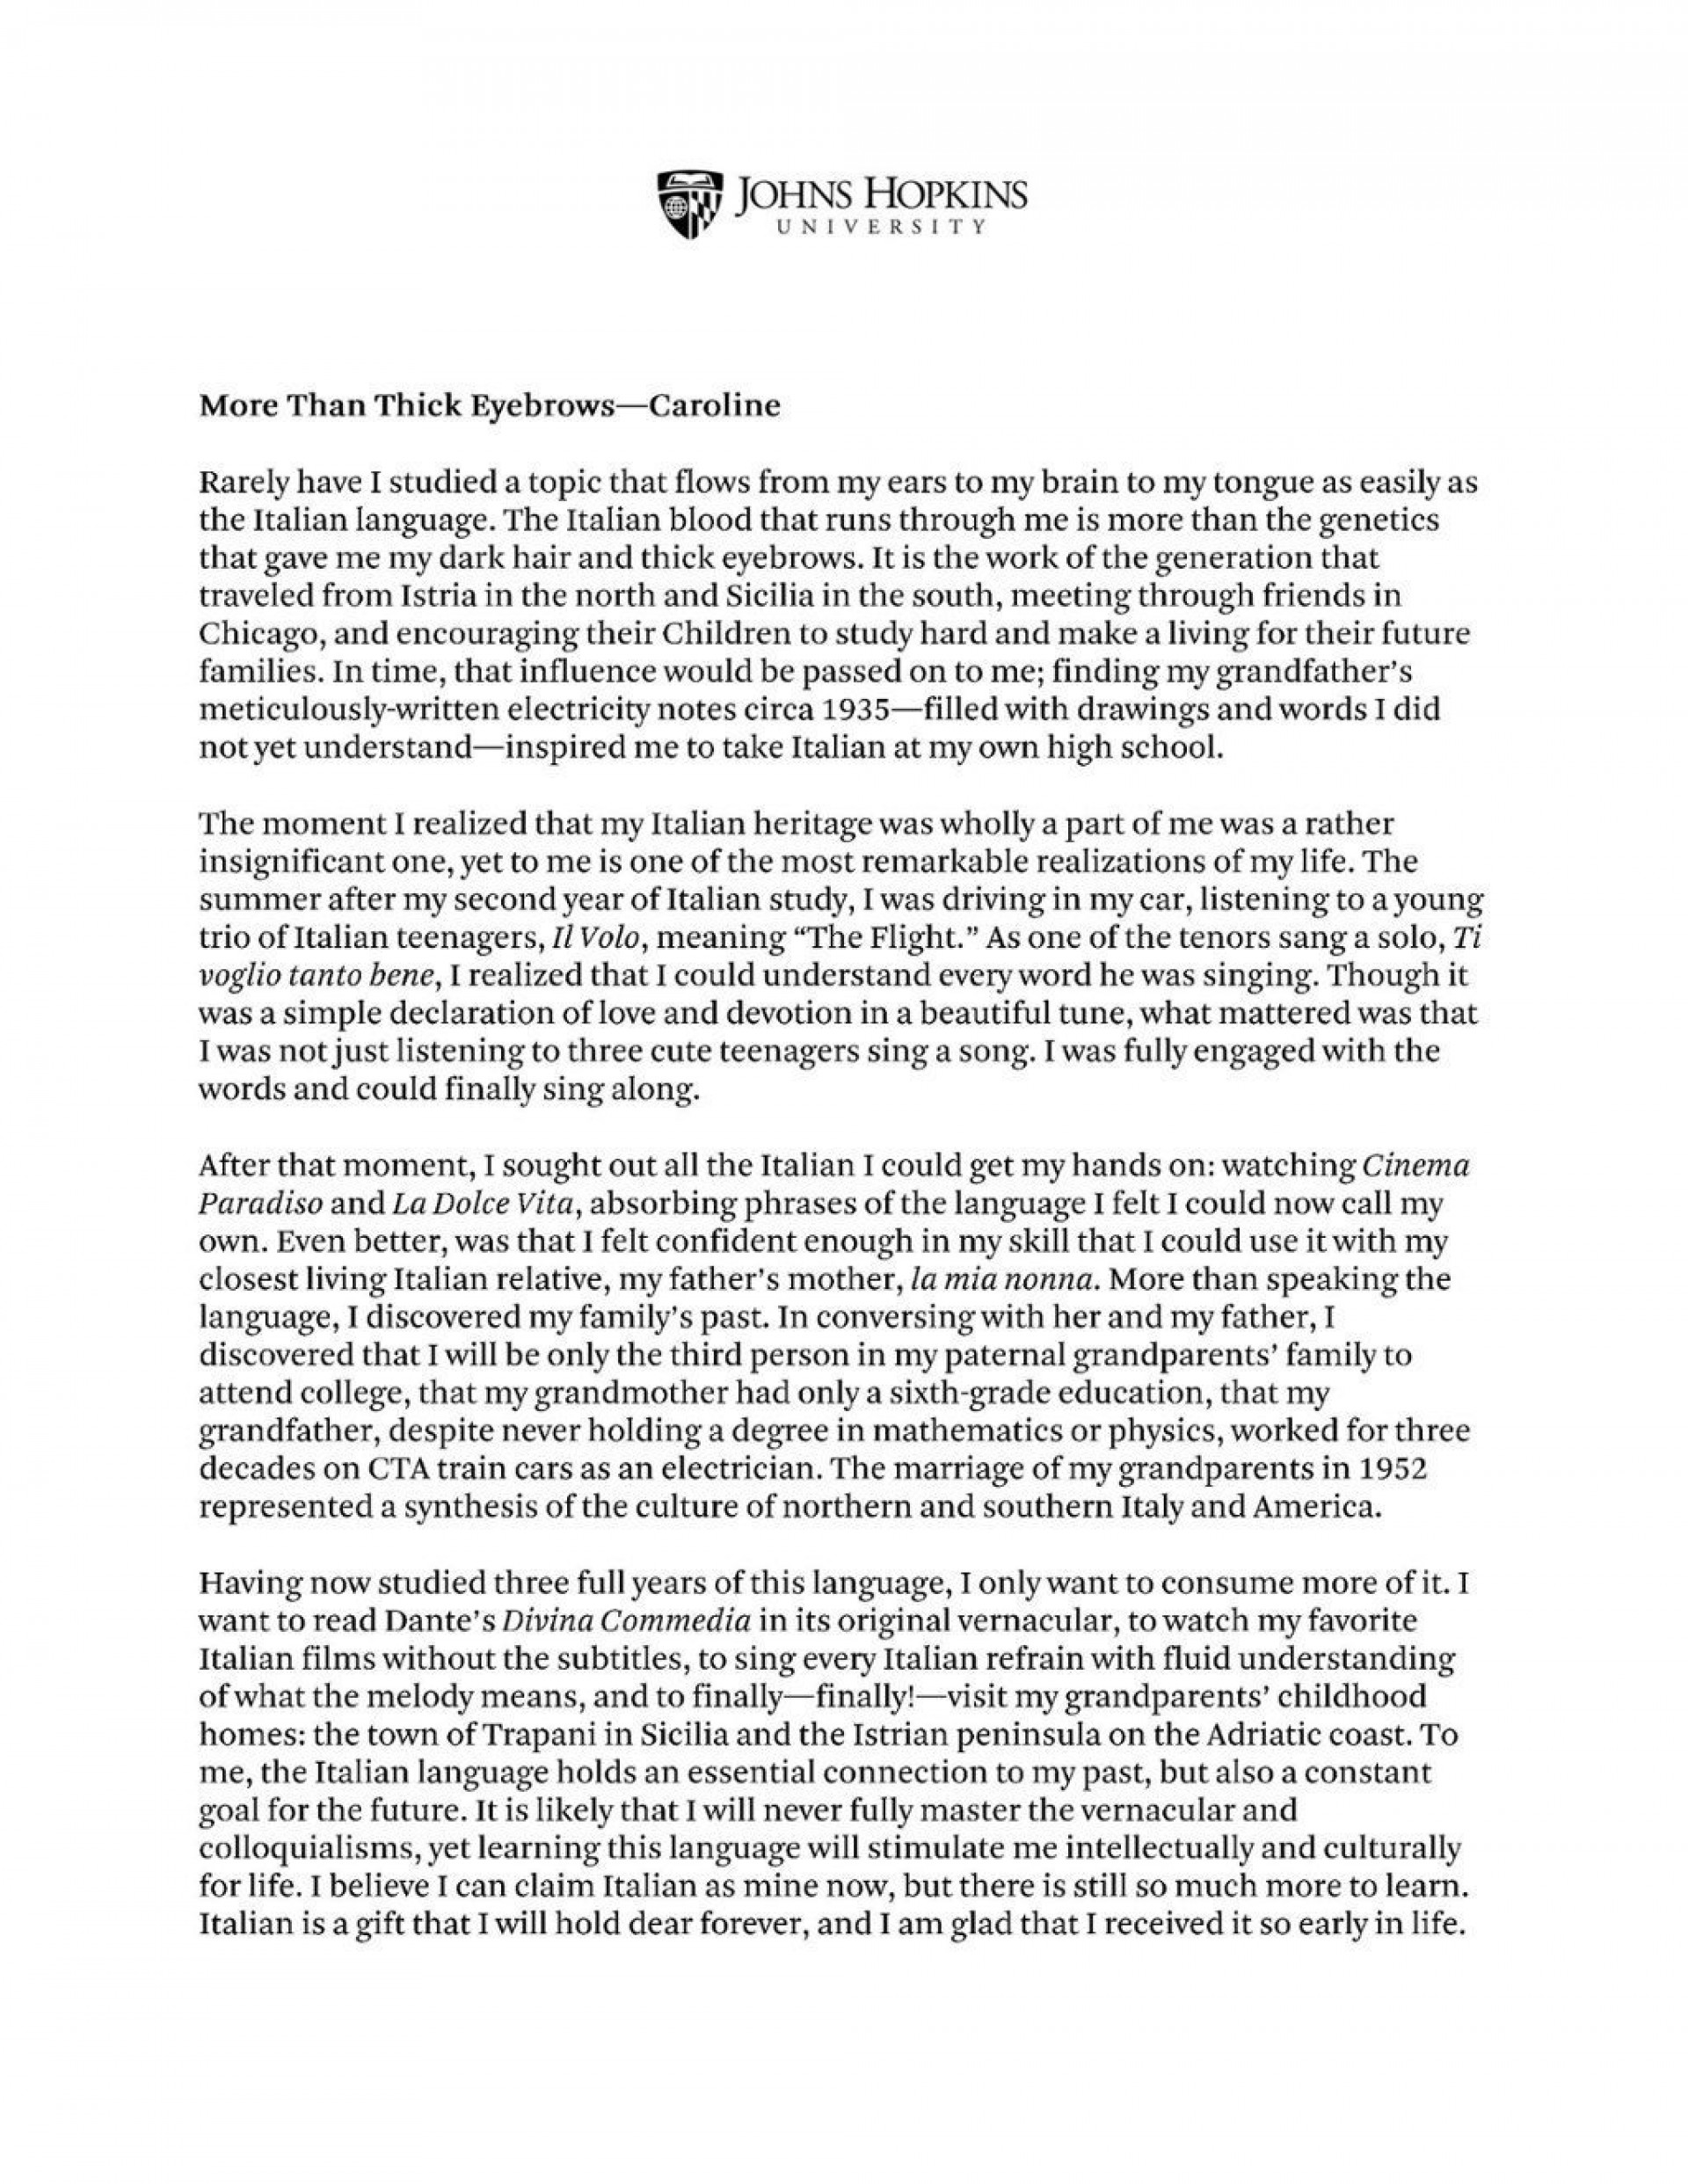 010 Rare College Application Essay Format Example Sample  Examples Outline1920